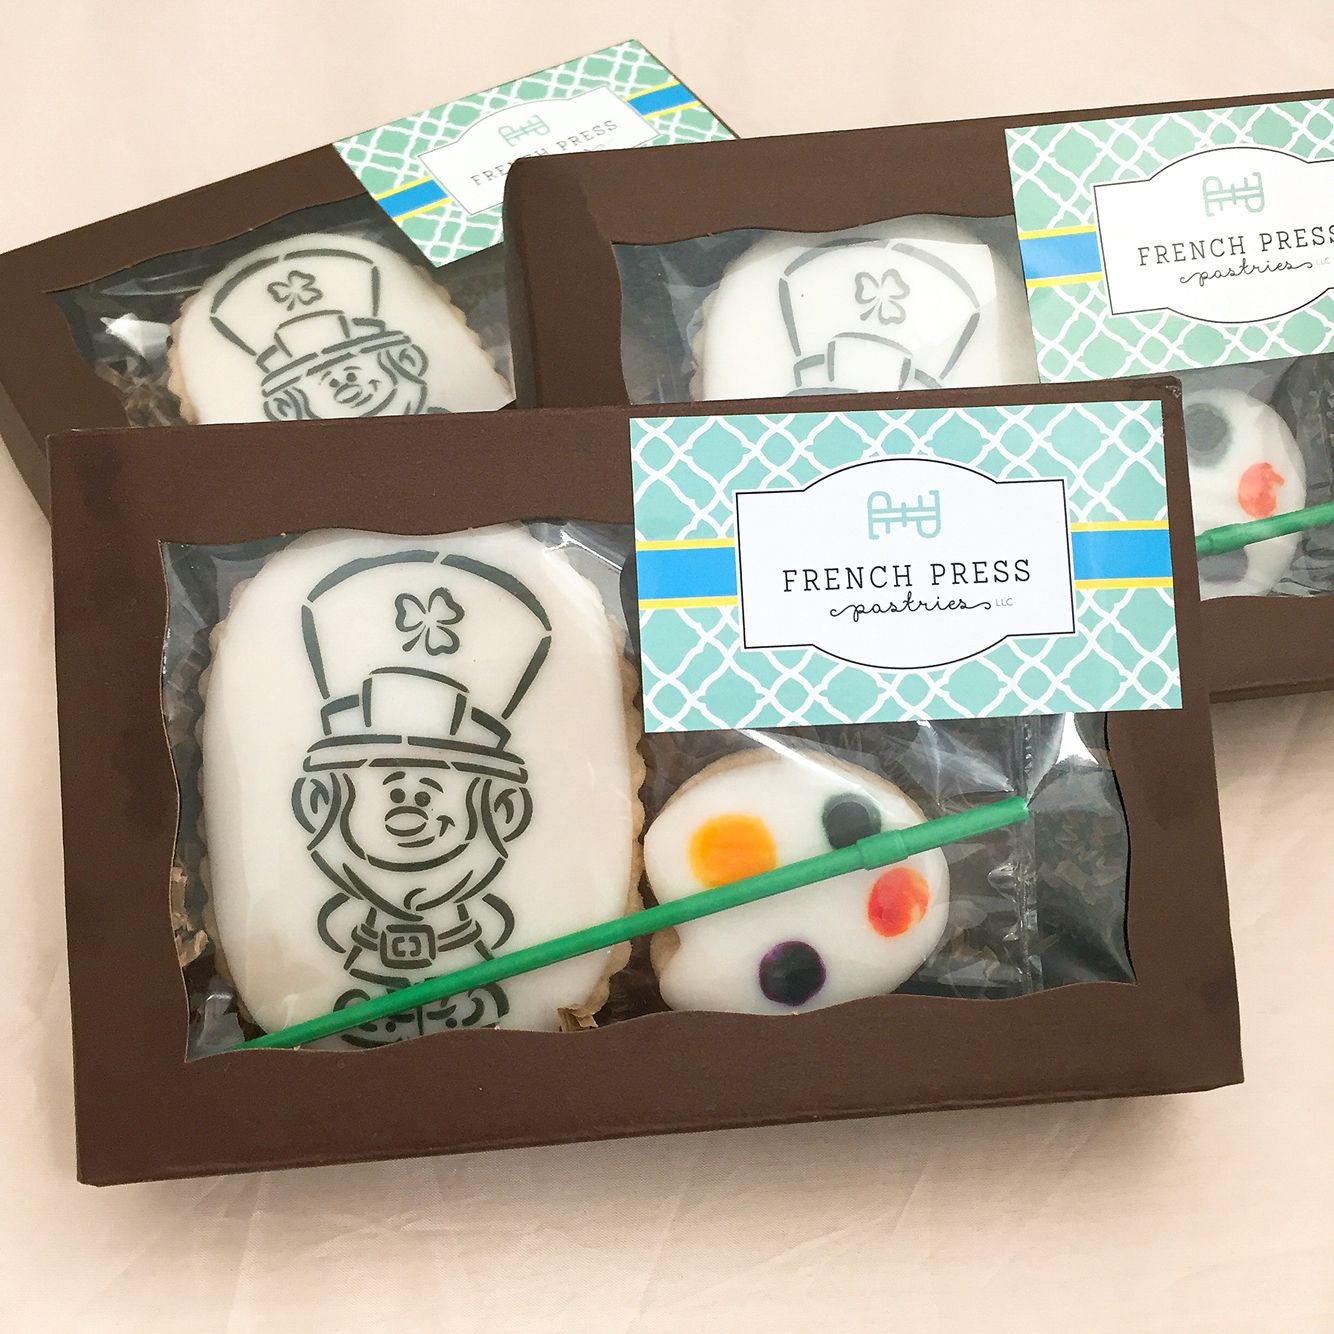 Paint your own cookies! St Patrick's day Frenchpresspastries.com